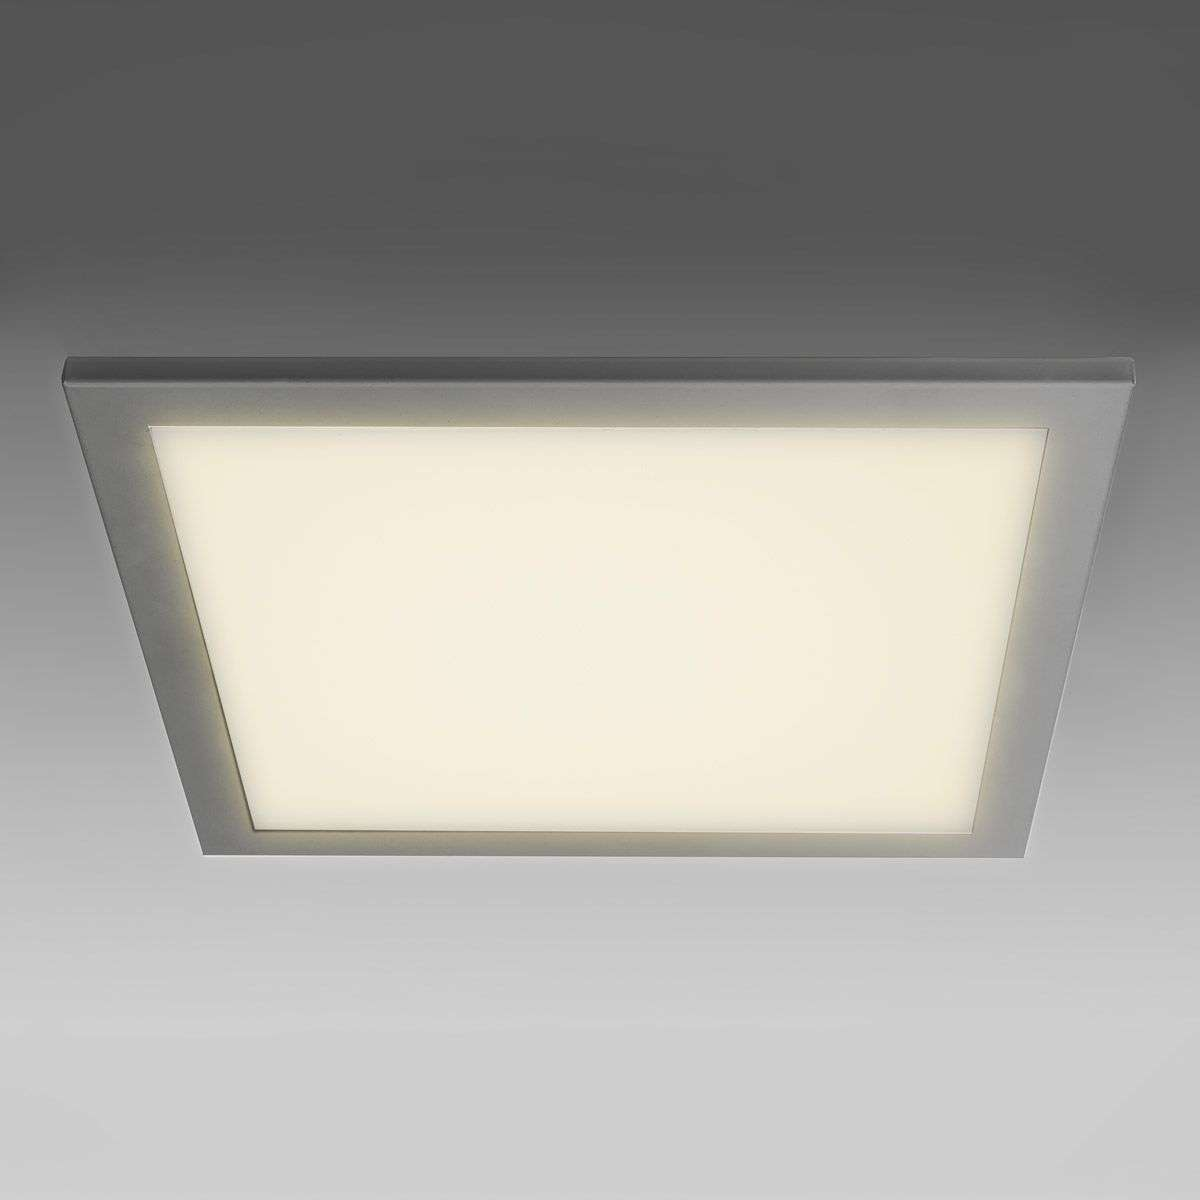 SUN 9 ultra slim LED recessed ceiling light-1018227X-31